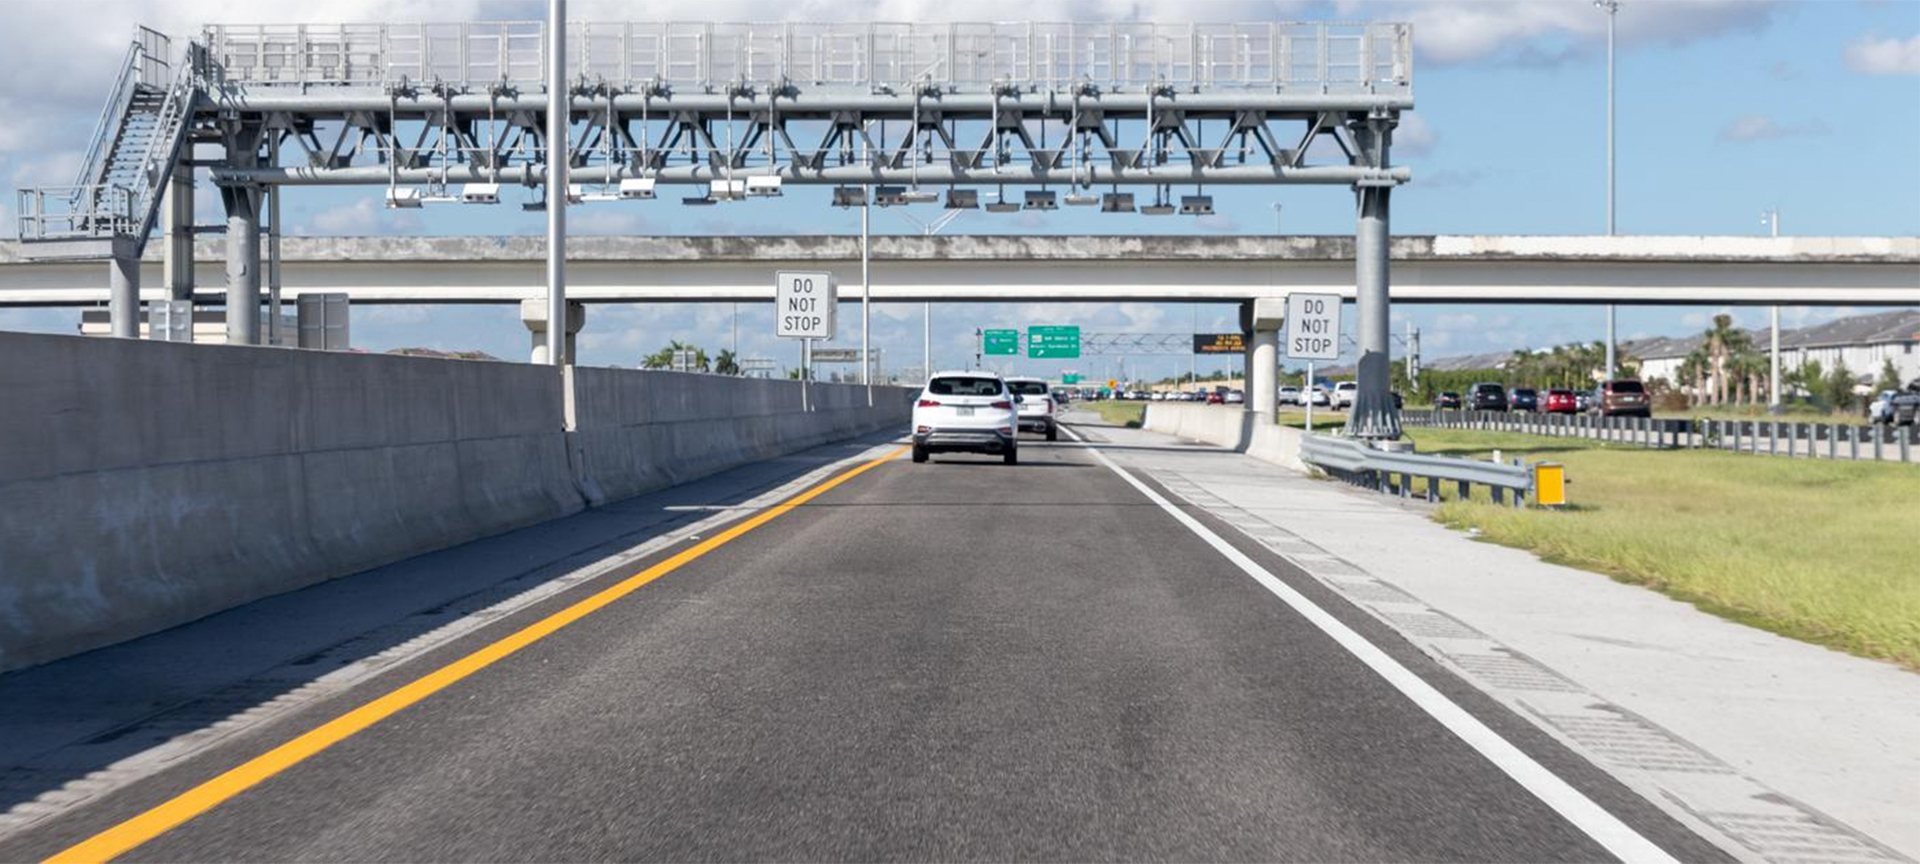 Florida's Turnpike System roads are constructed, operated and maintained through toll revenues collected from our customers. Every vehicle pays a toll that is generally based on the distance of the trip and the number of axles on the vehicle. Customers can choose to pay their tolls electronically using SunPass (the preferred method), another interoperable transponder, cash or Toll-by-Plate.